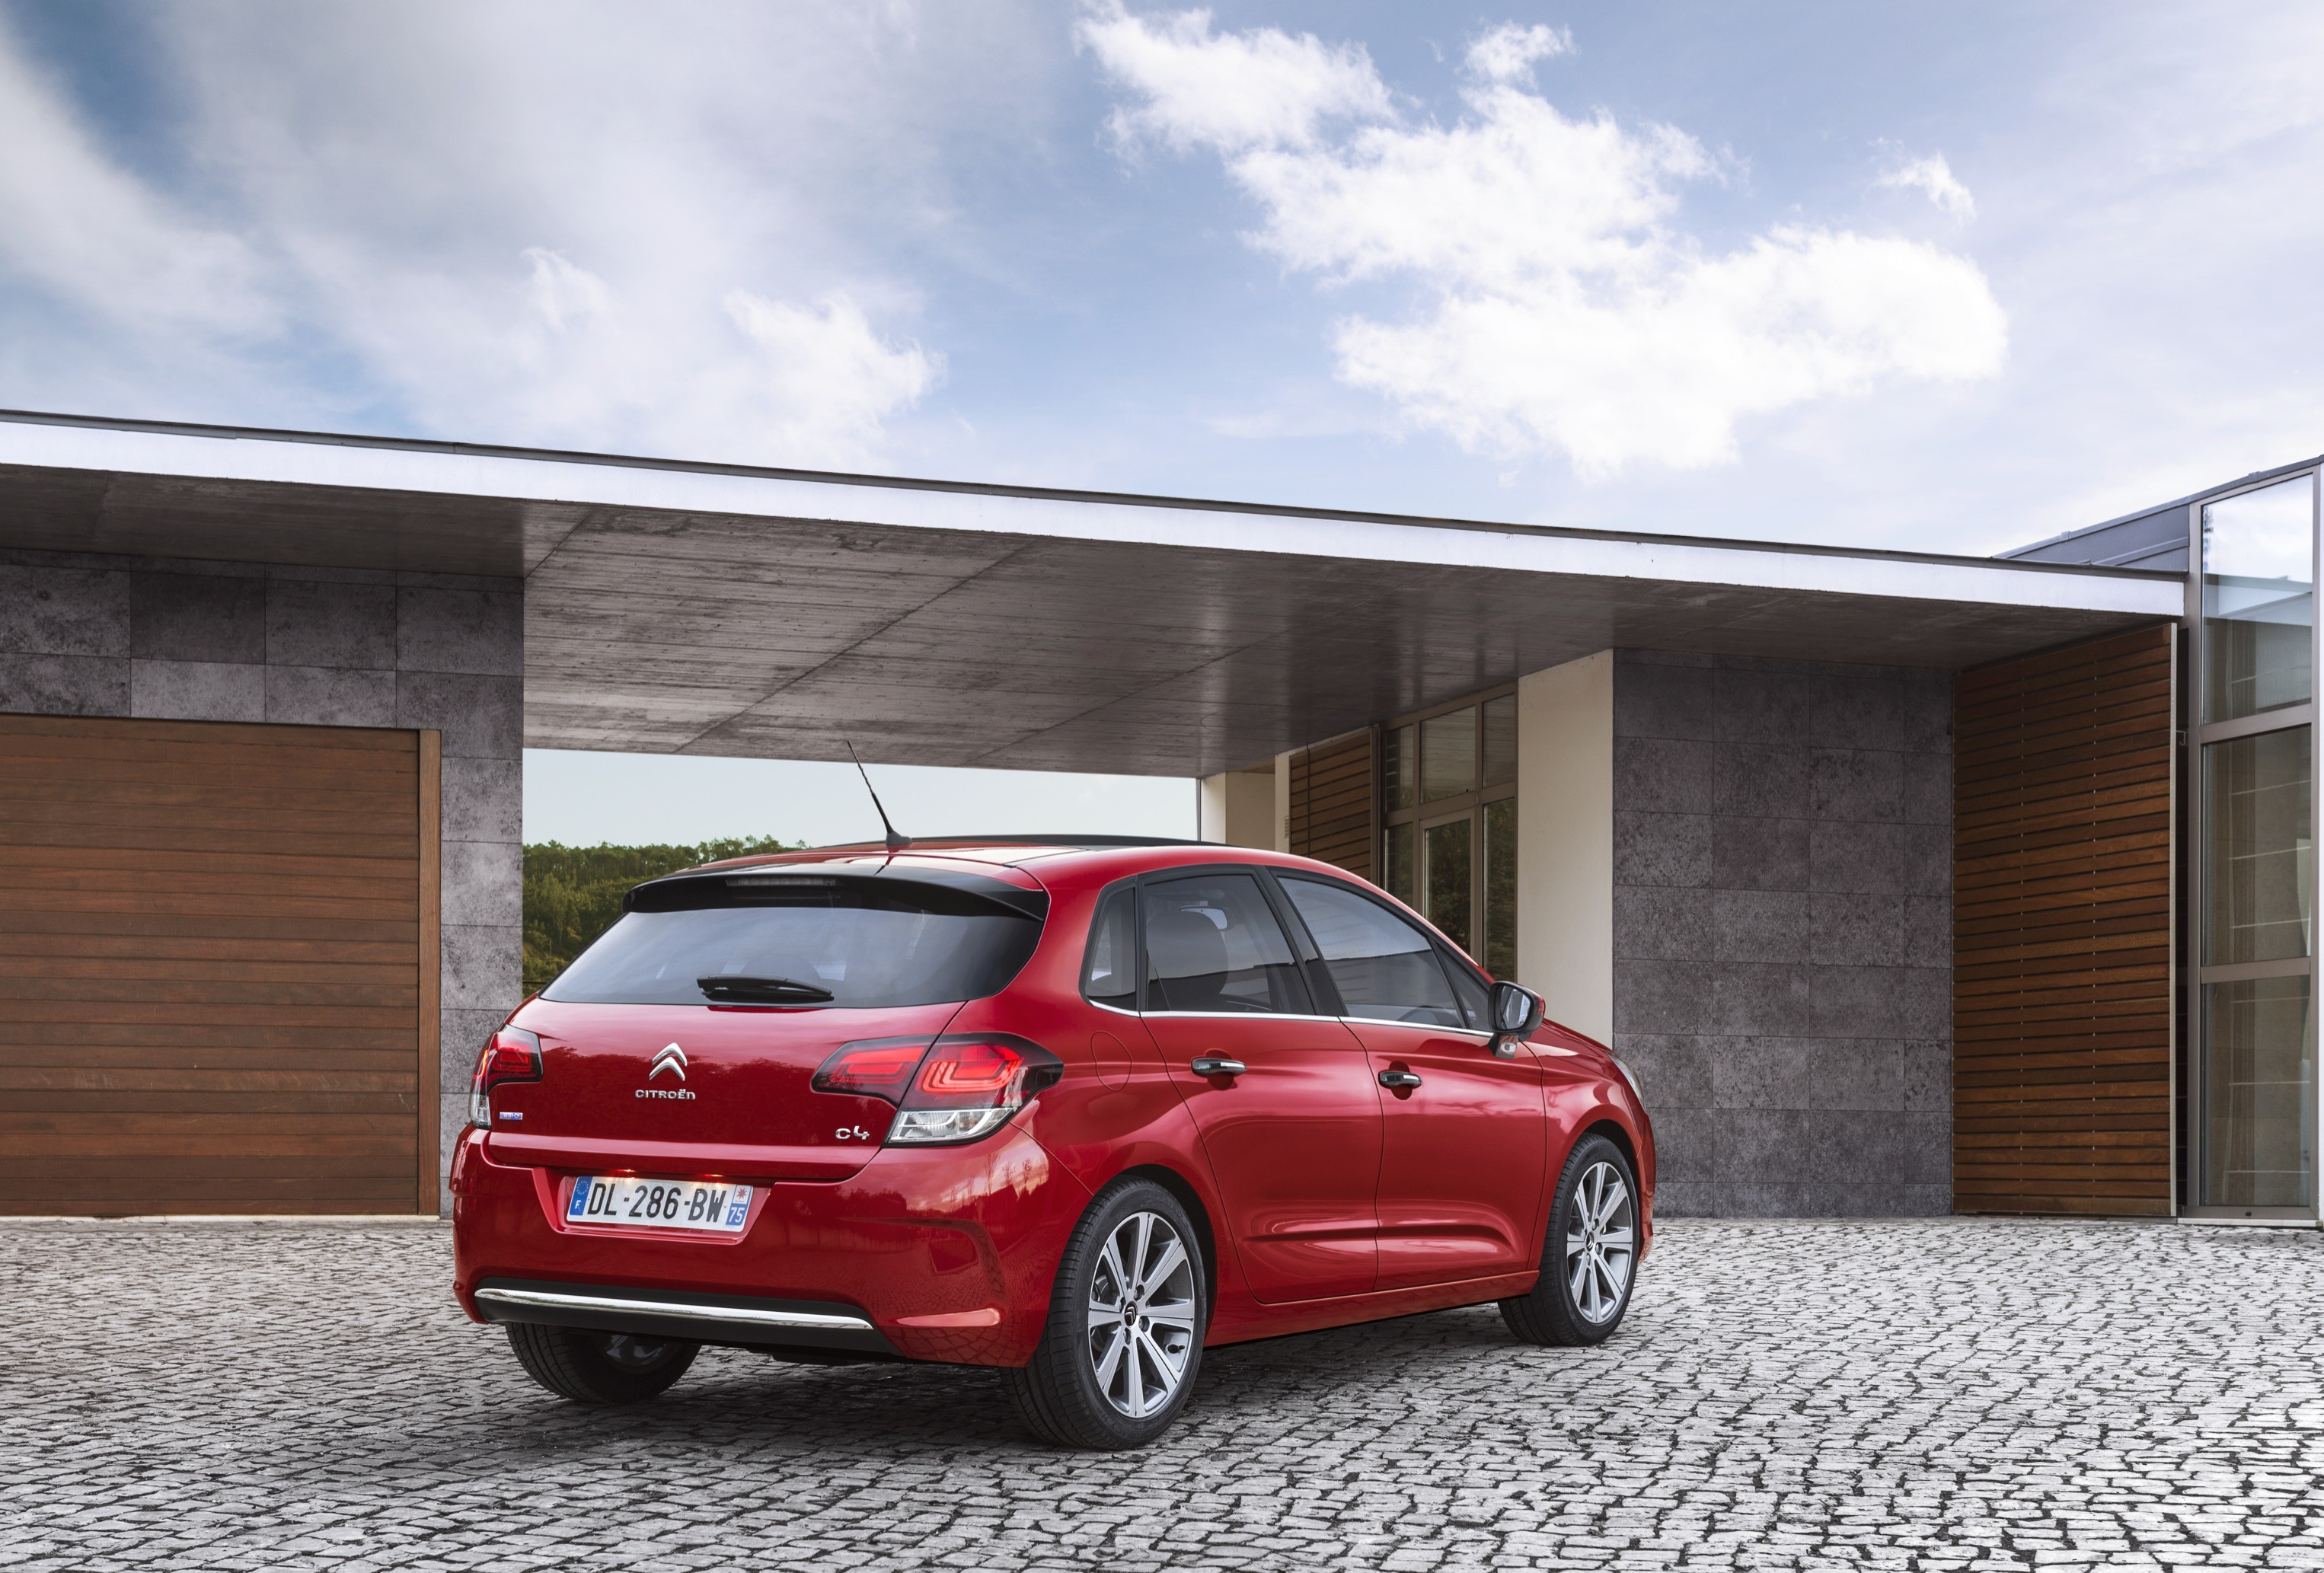 88 New 2020 Citroen C4 Picture